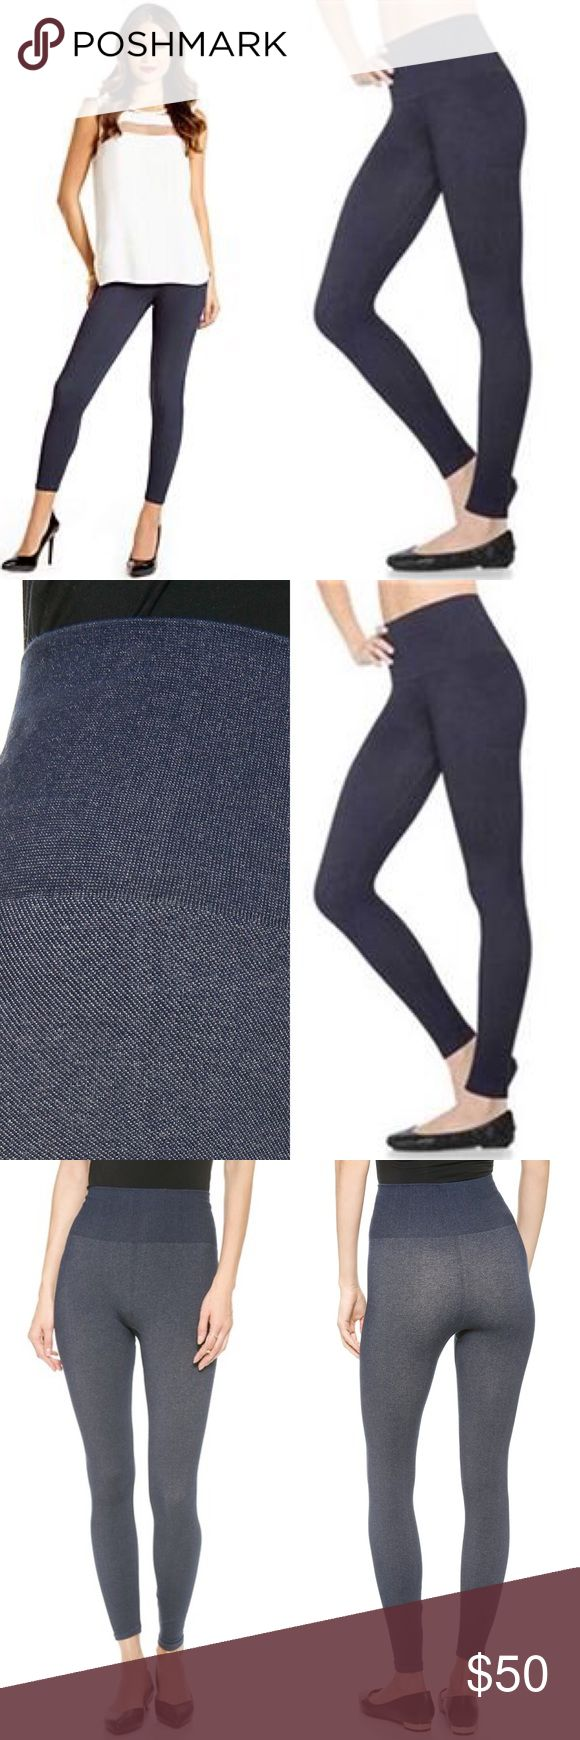 New Spanx Looks at me leggings denim LARGE Spanx LOOK AT ME LEGGINGS. denim full length shaping leggings. Size Large. Hard to find. Material content: SPANX Pants Leggings